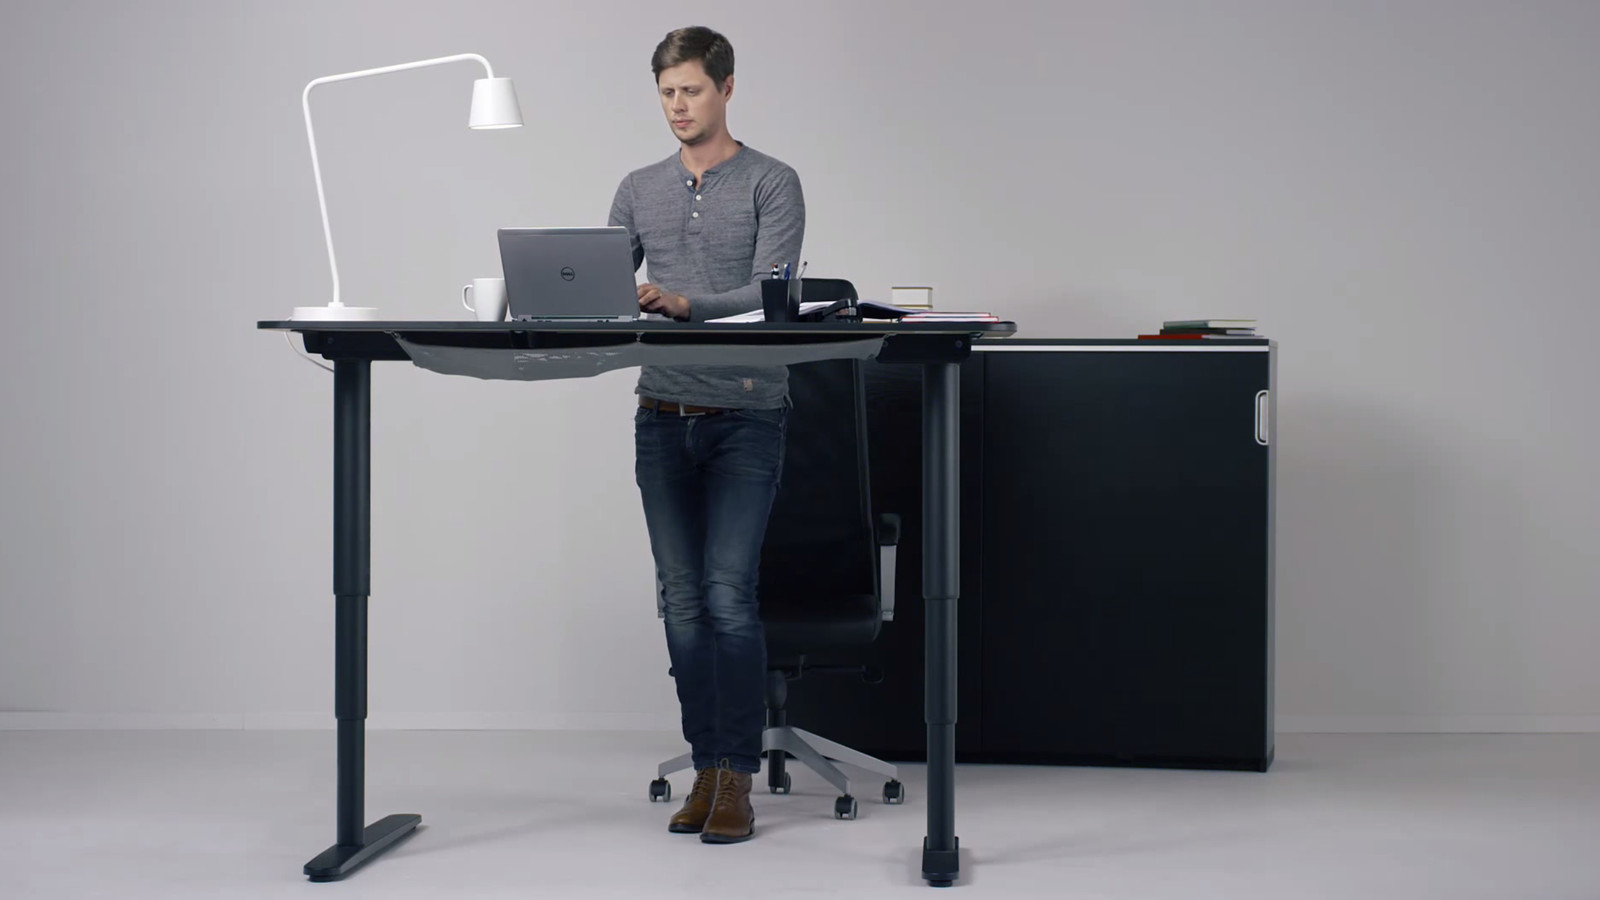 Ikea hopes its new motorized standing desk will get you ...